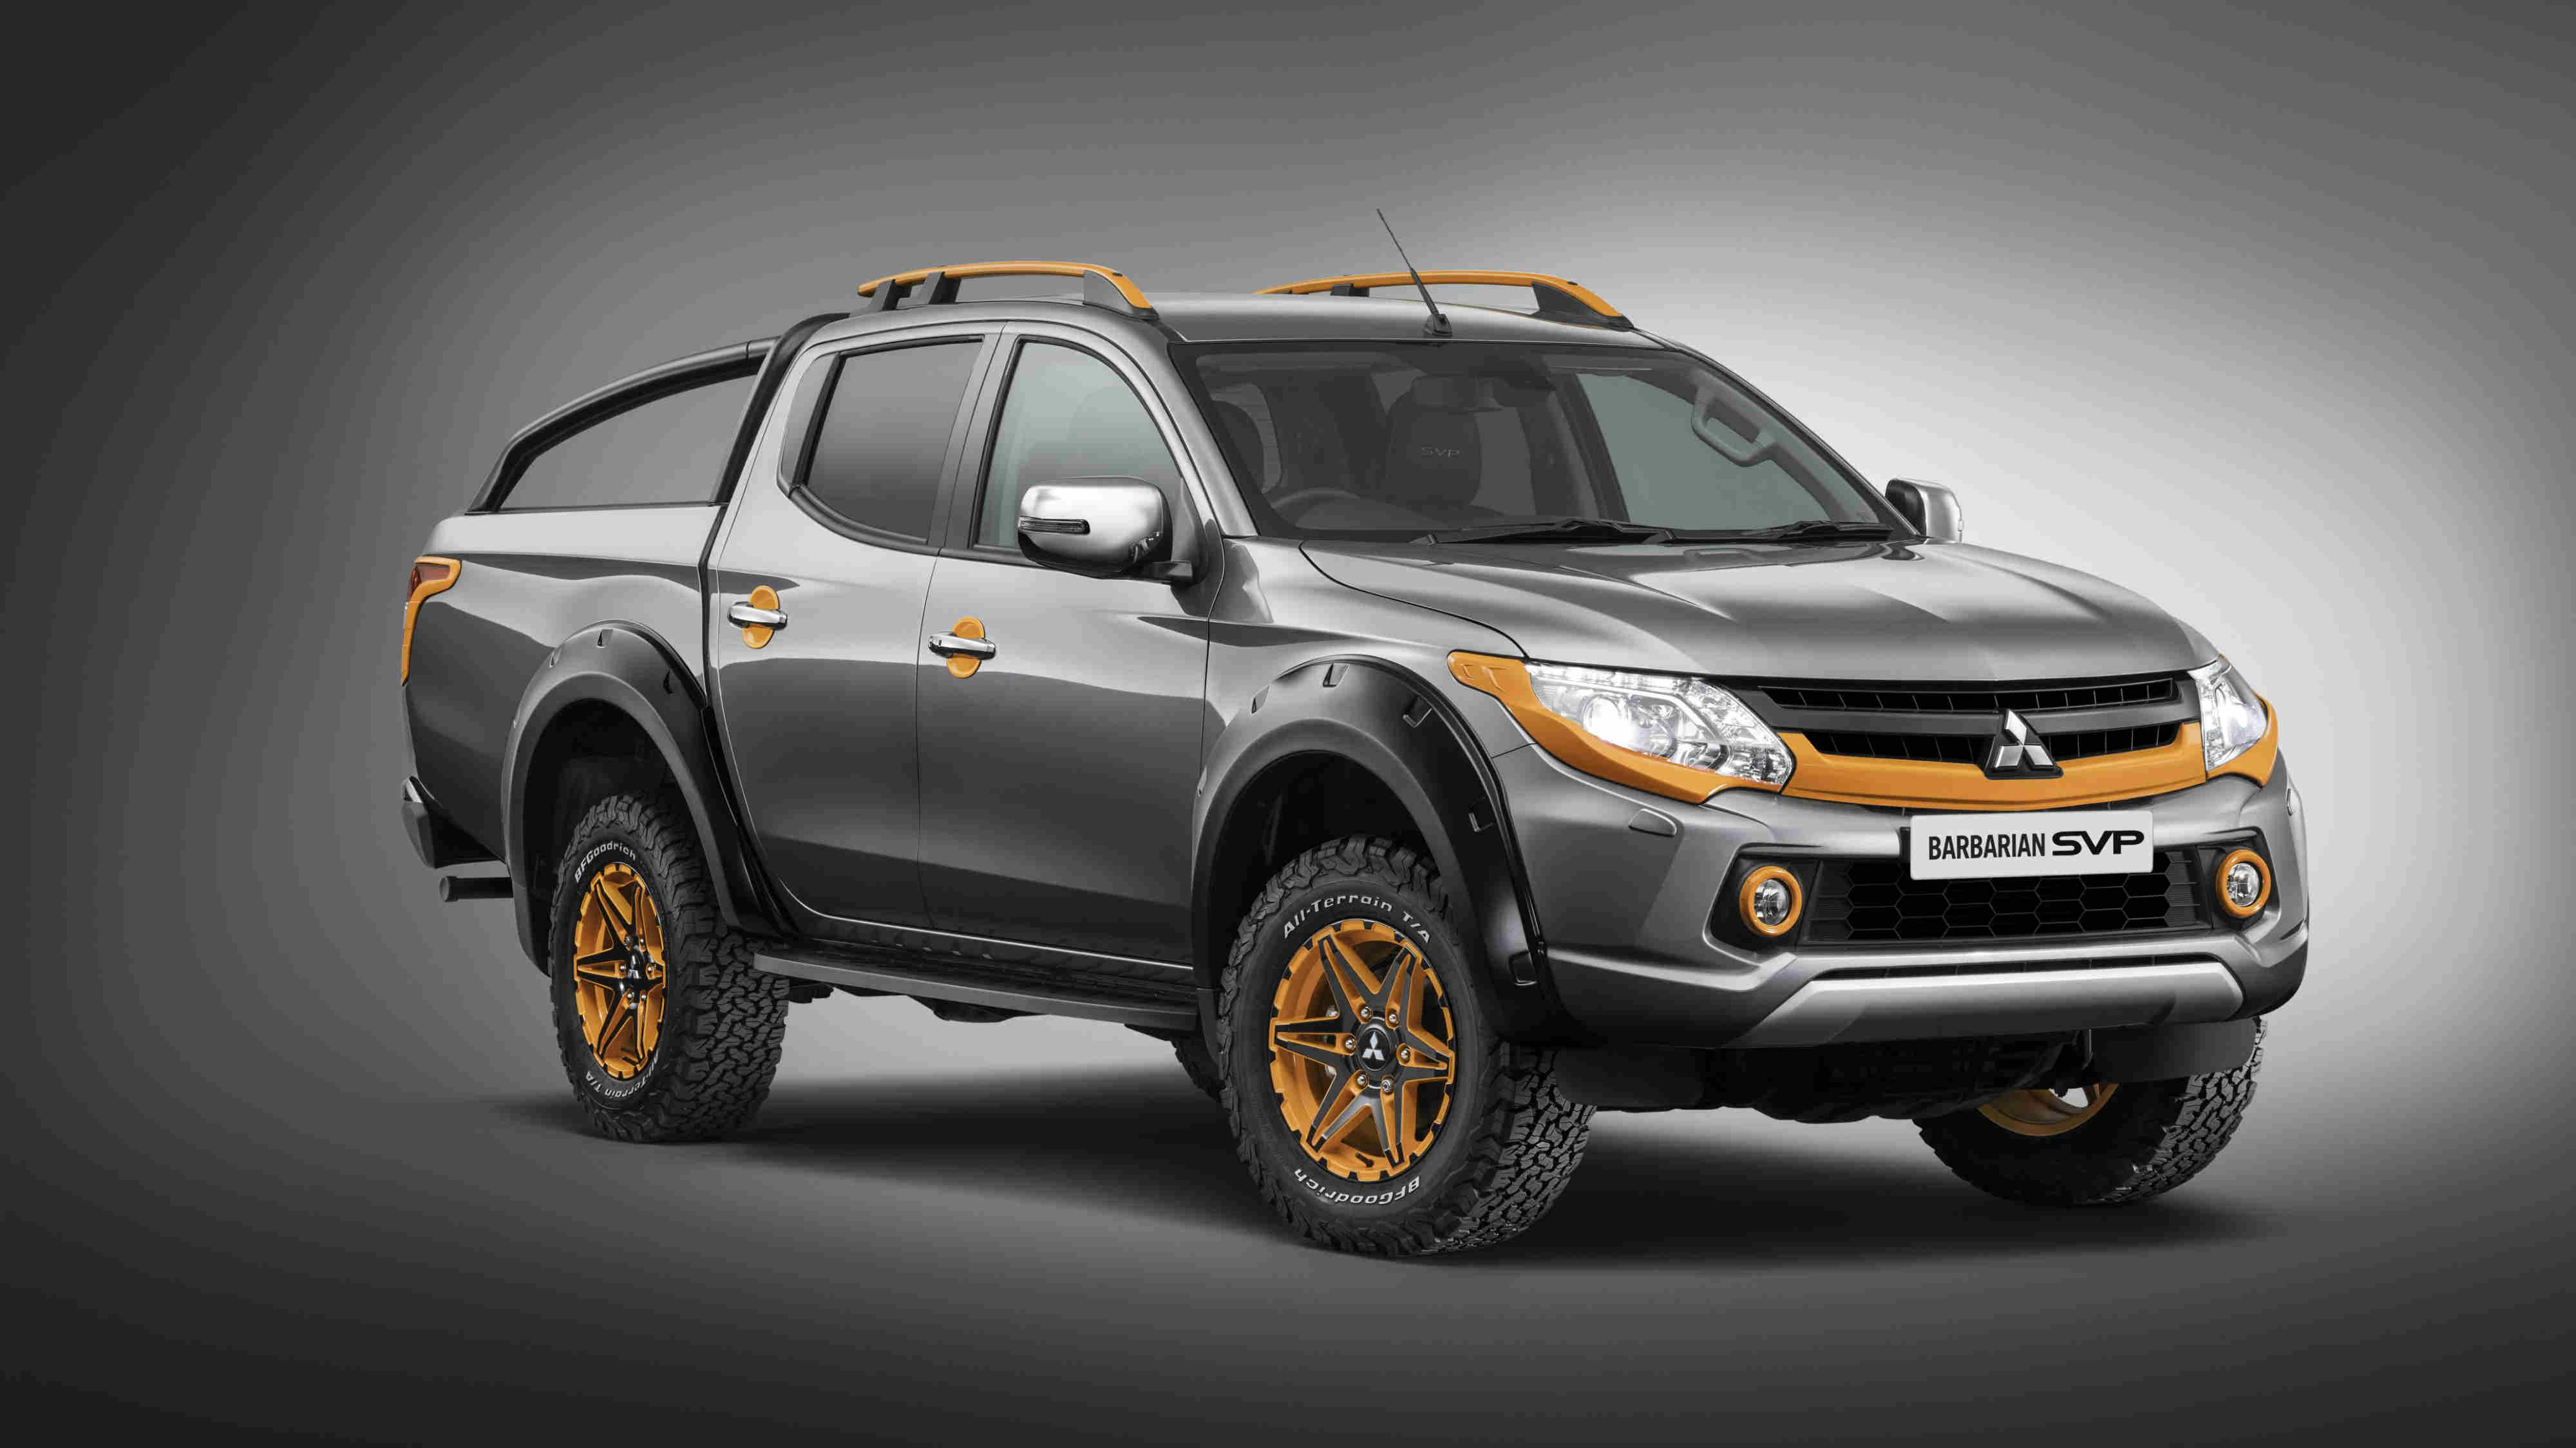 image of a grey and orange mitsubishi l200 barbarian car exterior